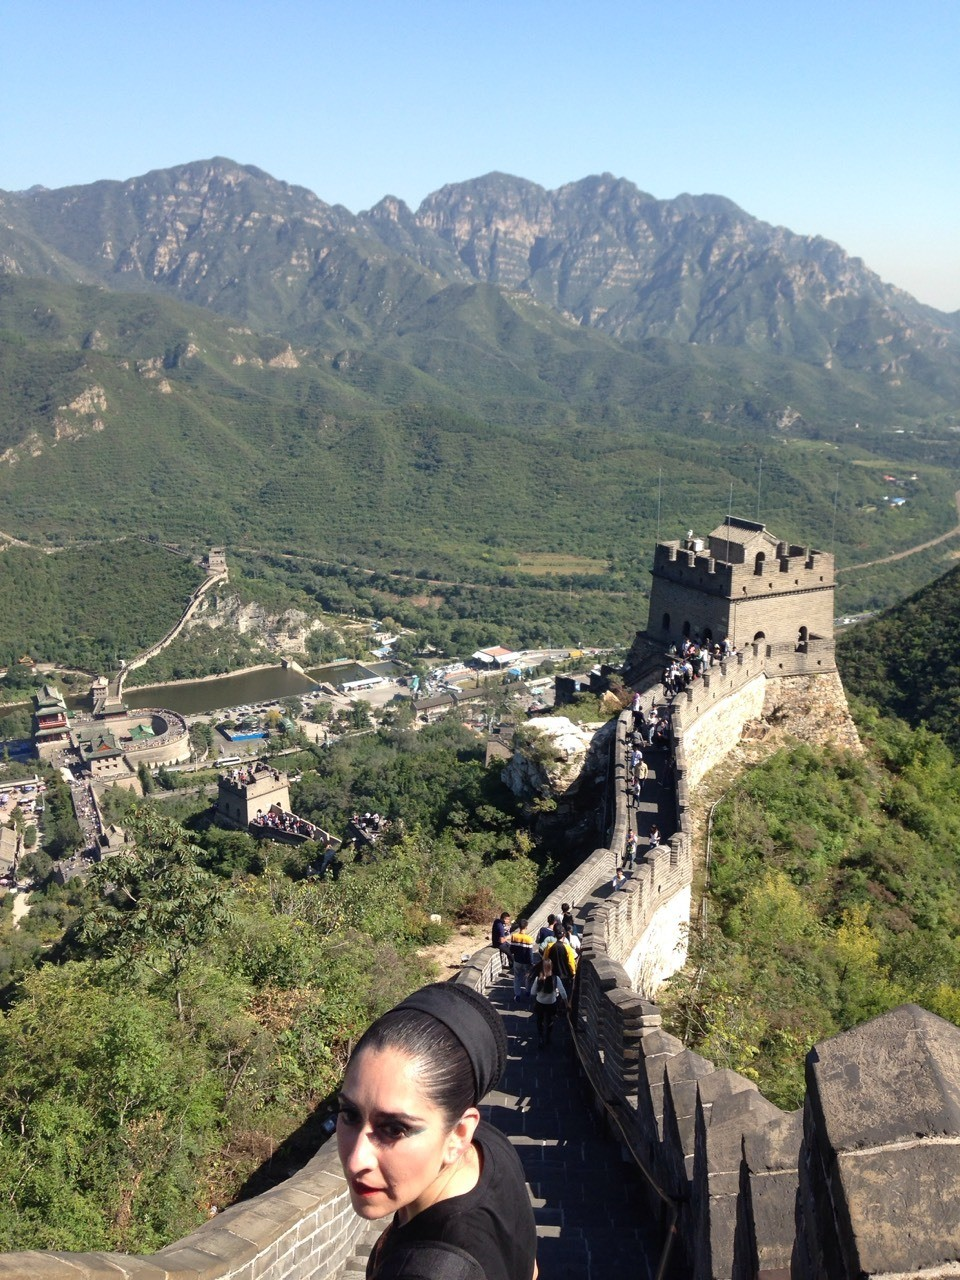 In 2015, I went on a international tour with my dance group to China. While there, we visited the Great Wall of China and performed there. The woman in the picture is my mother. - Karina, 15